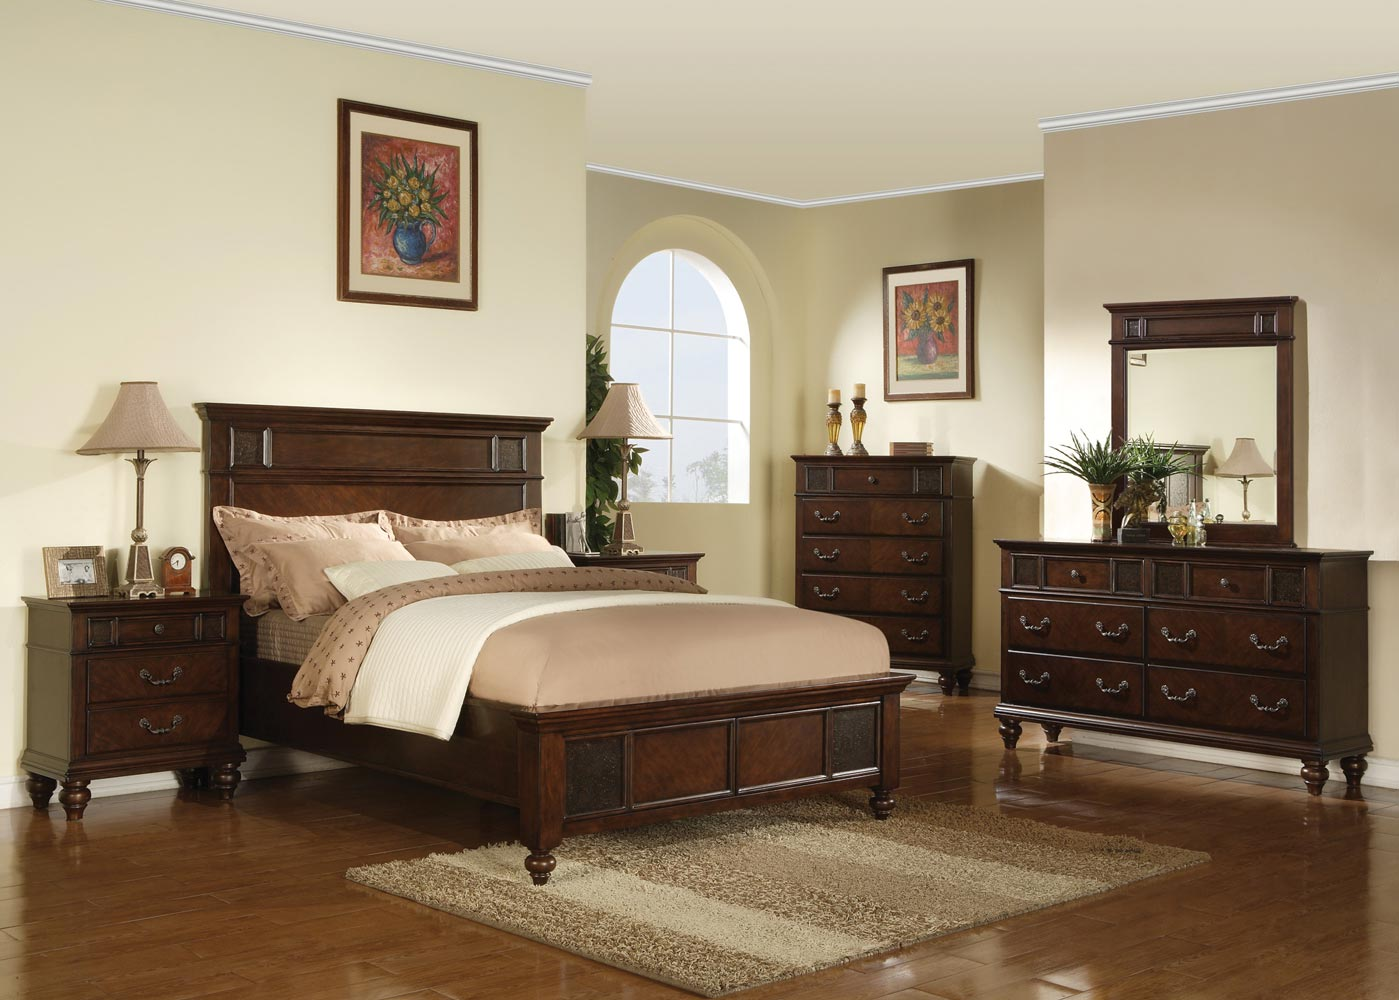 Coaster Sidney Bedroom Set - Dark Cherry